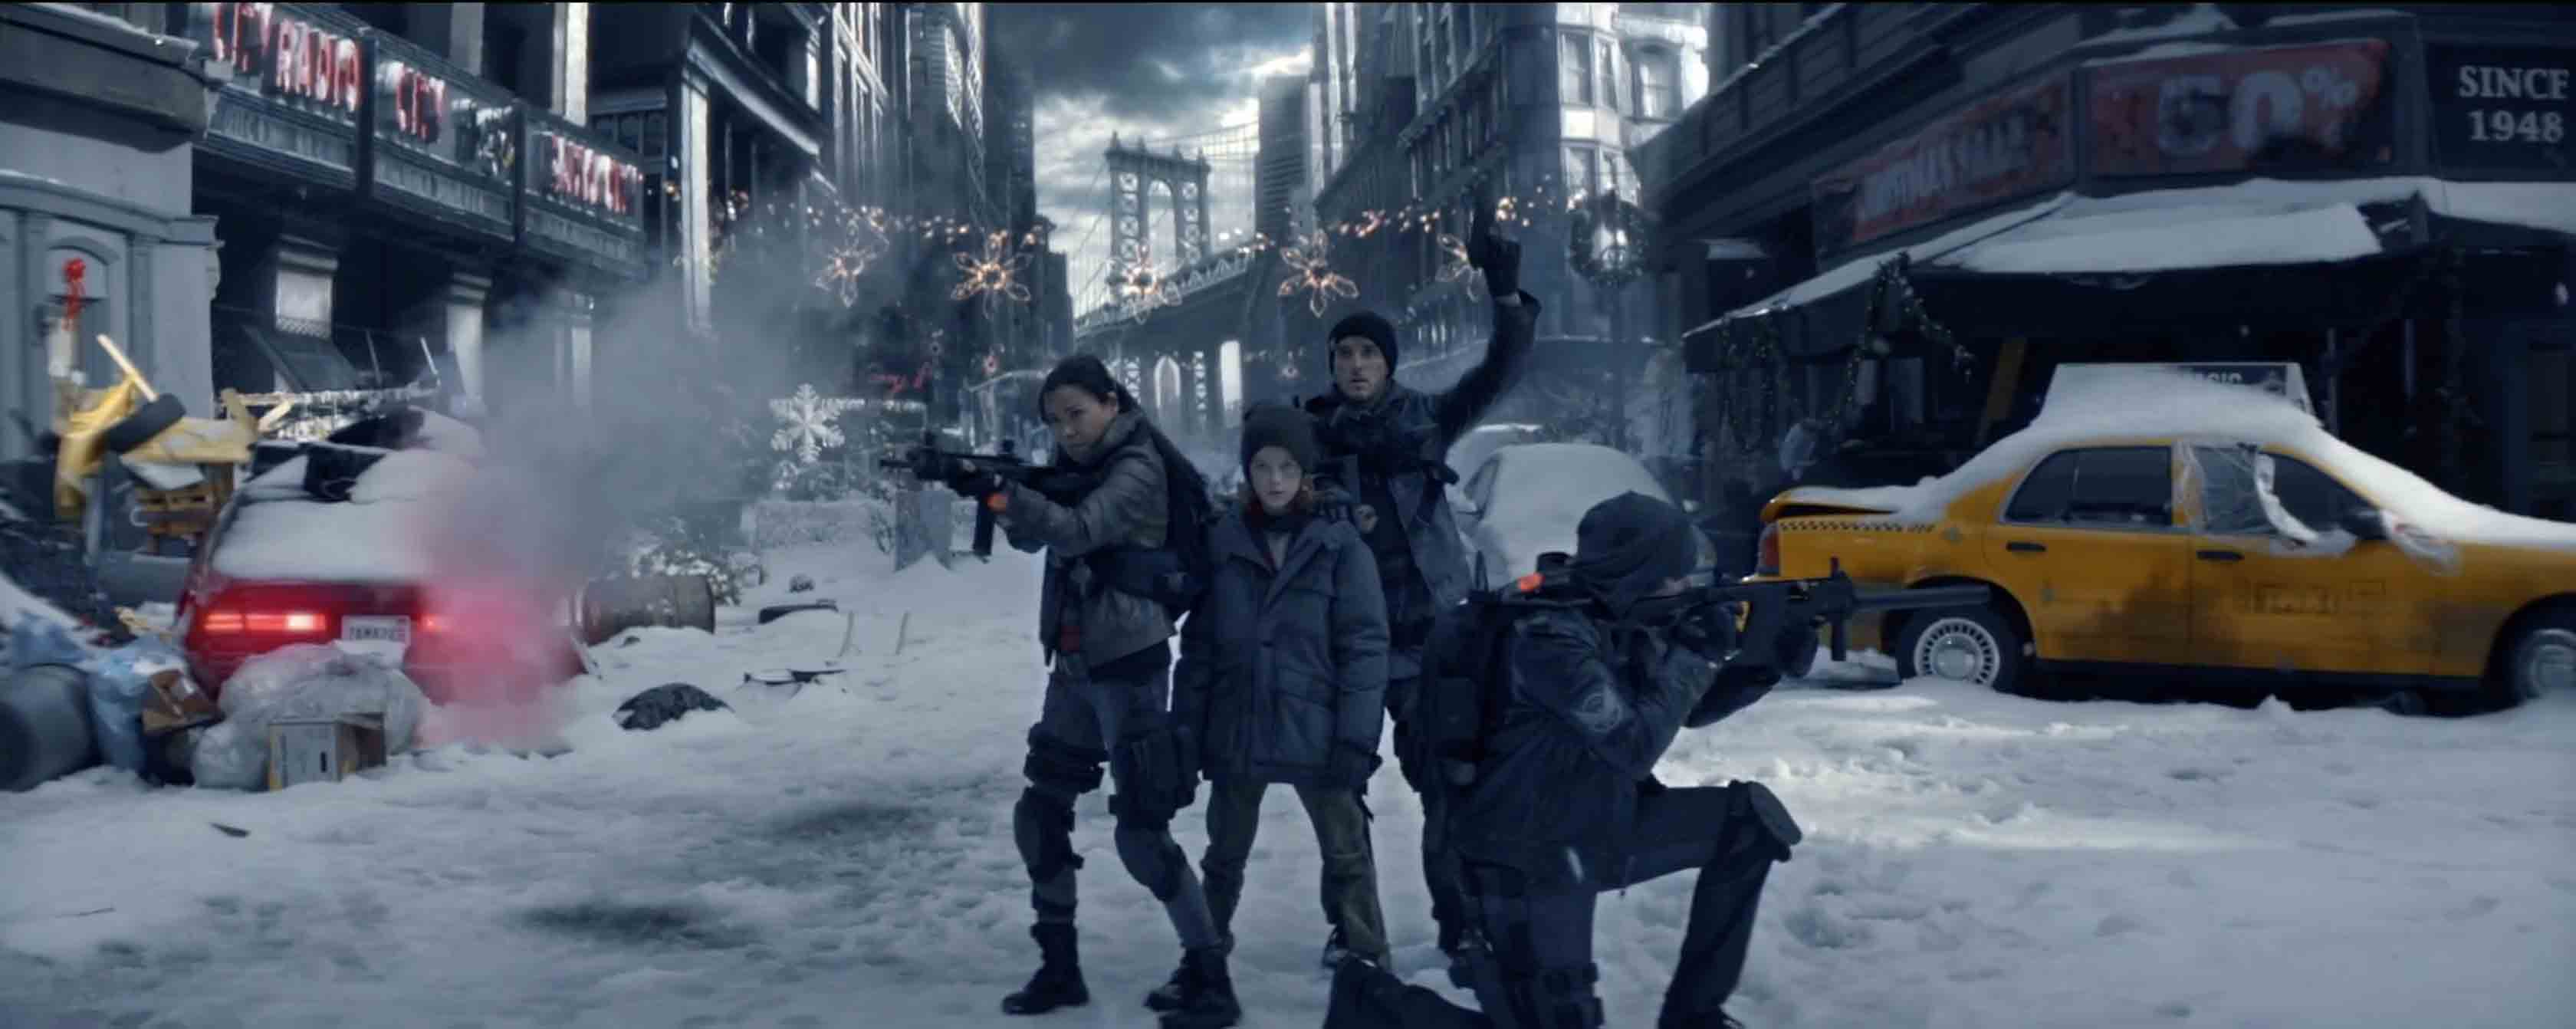 Live-Action Tom Clancy The Division Series